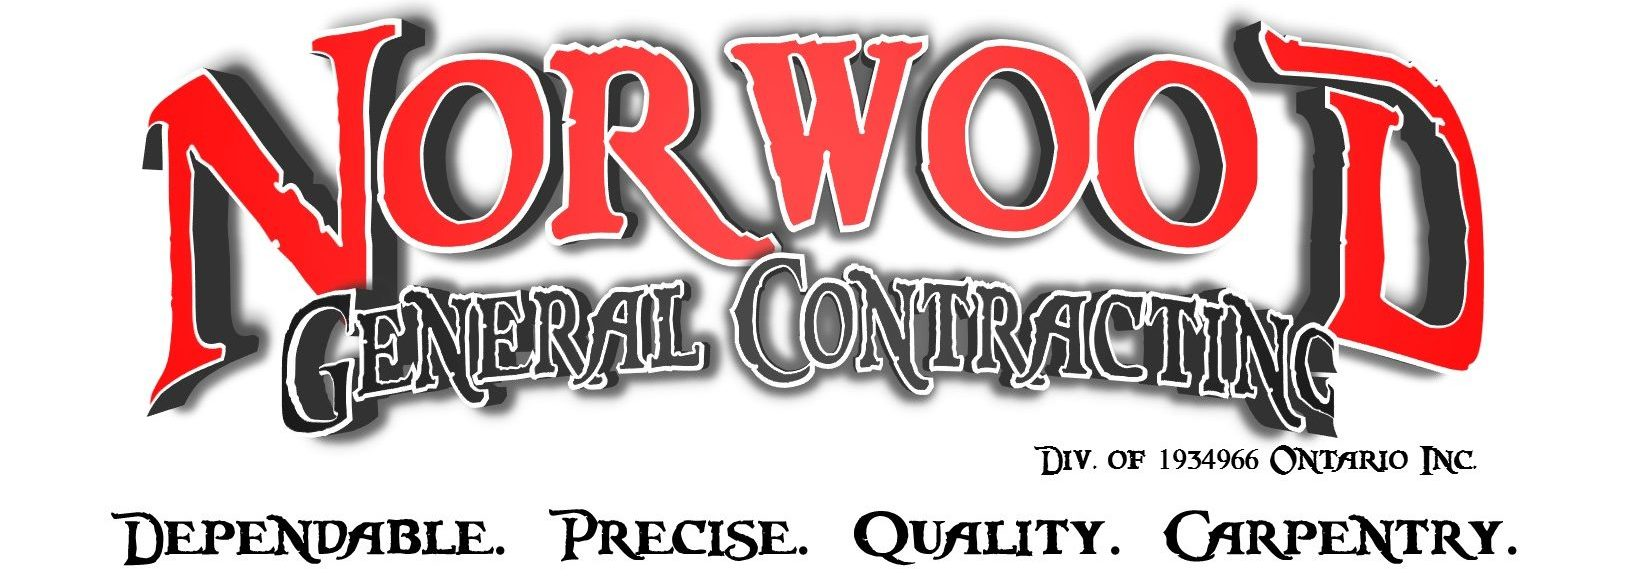 Norwood General Contracting